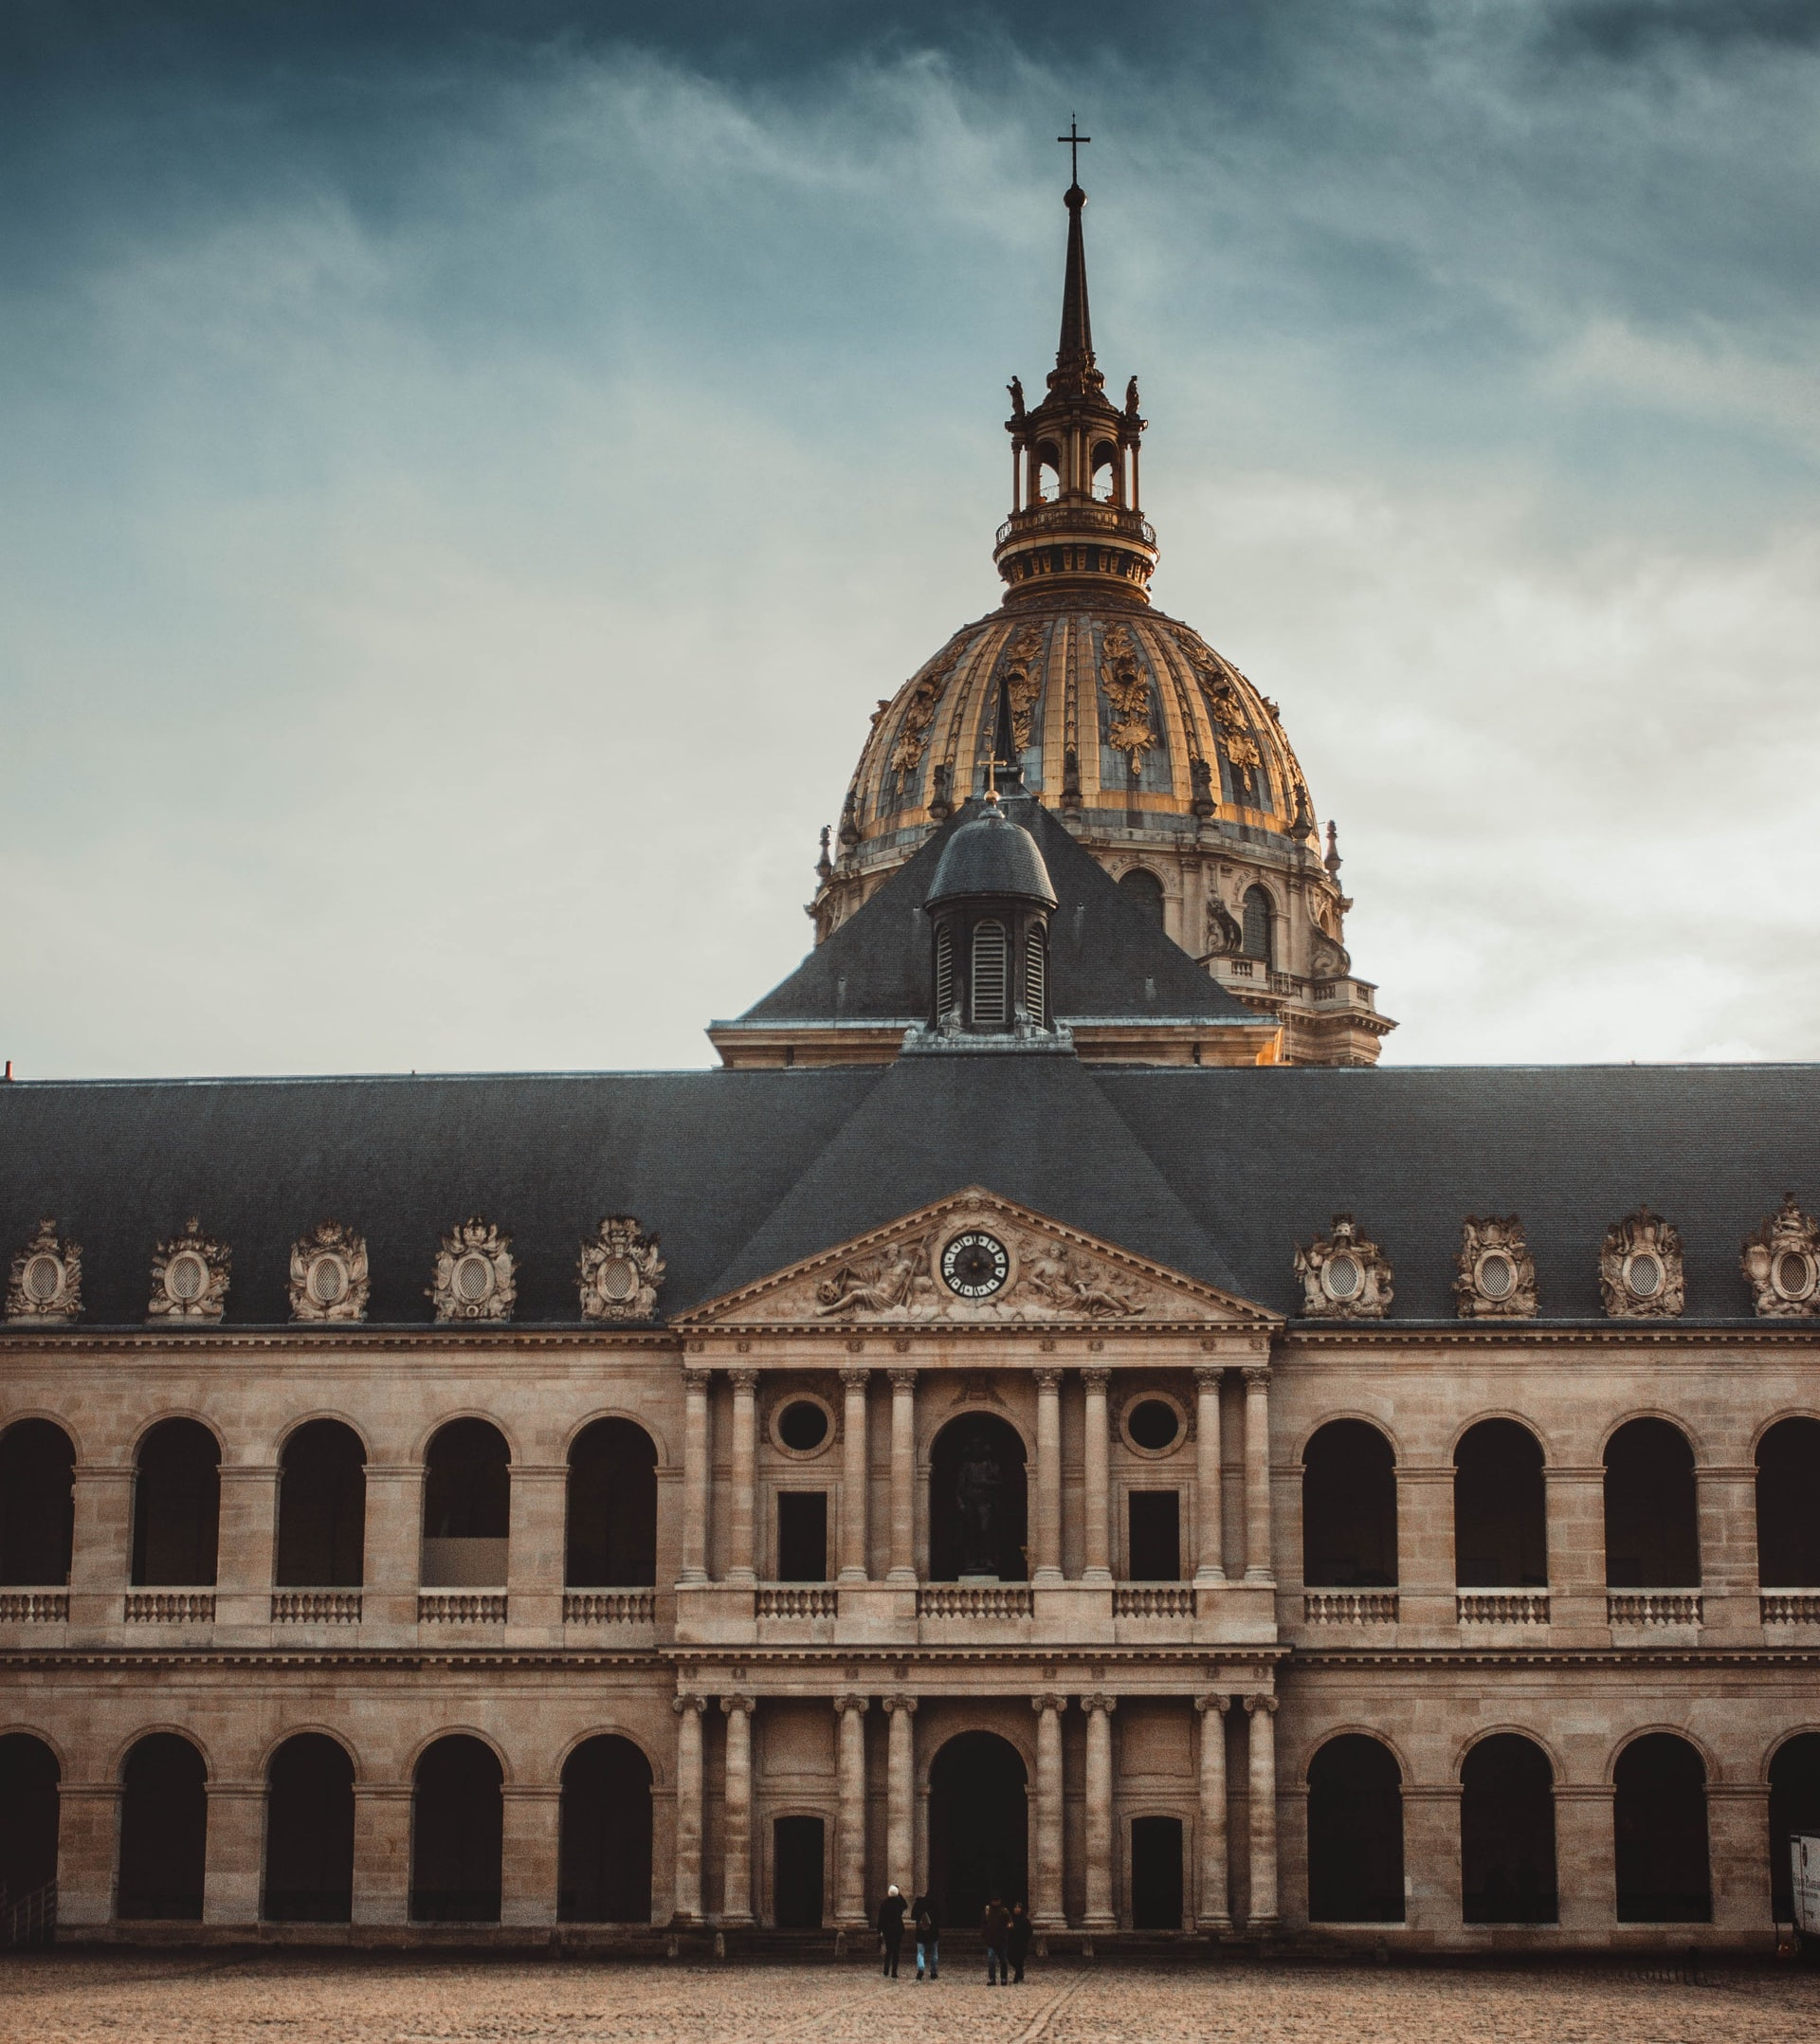 Les Invalides, formerly called the Hotel des Invalides